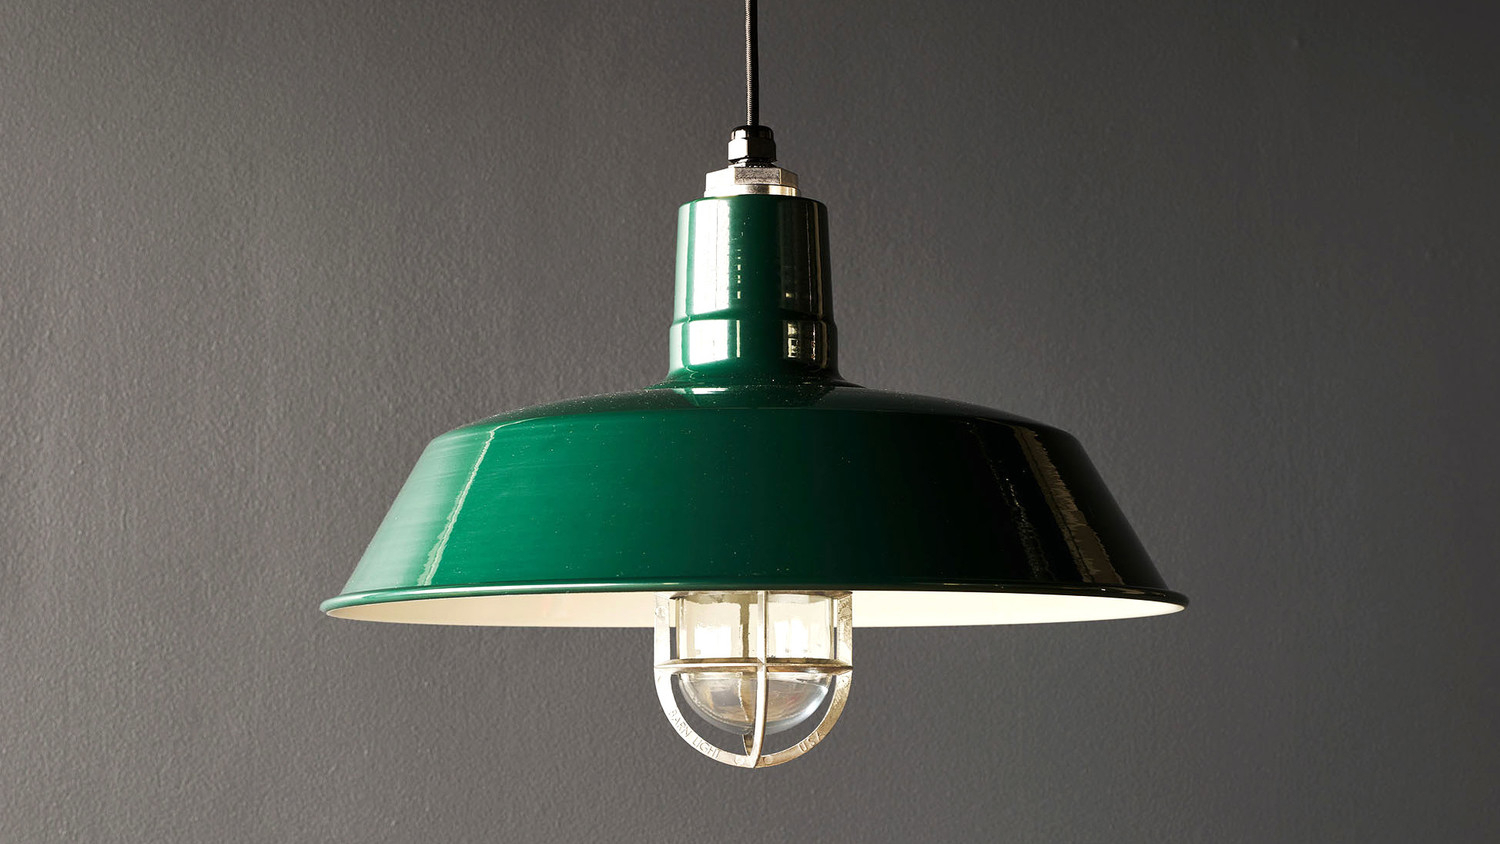 Check Out These Major Bargains: Laplante 5 Light Candle Within Hesse 5 Light Candle Style Chandeliers (View 23 of 30)